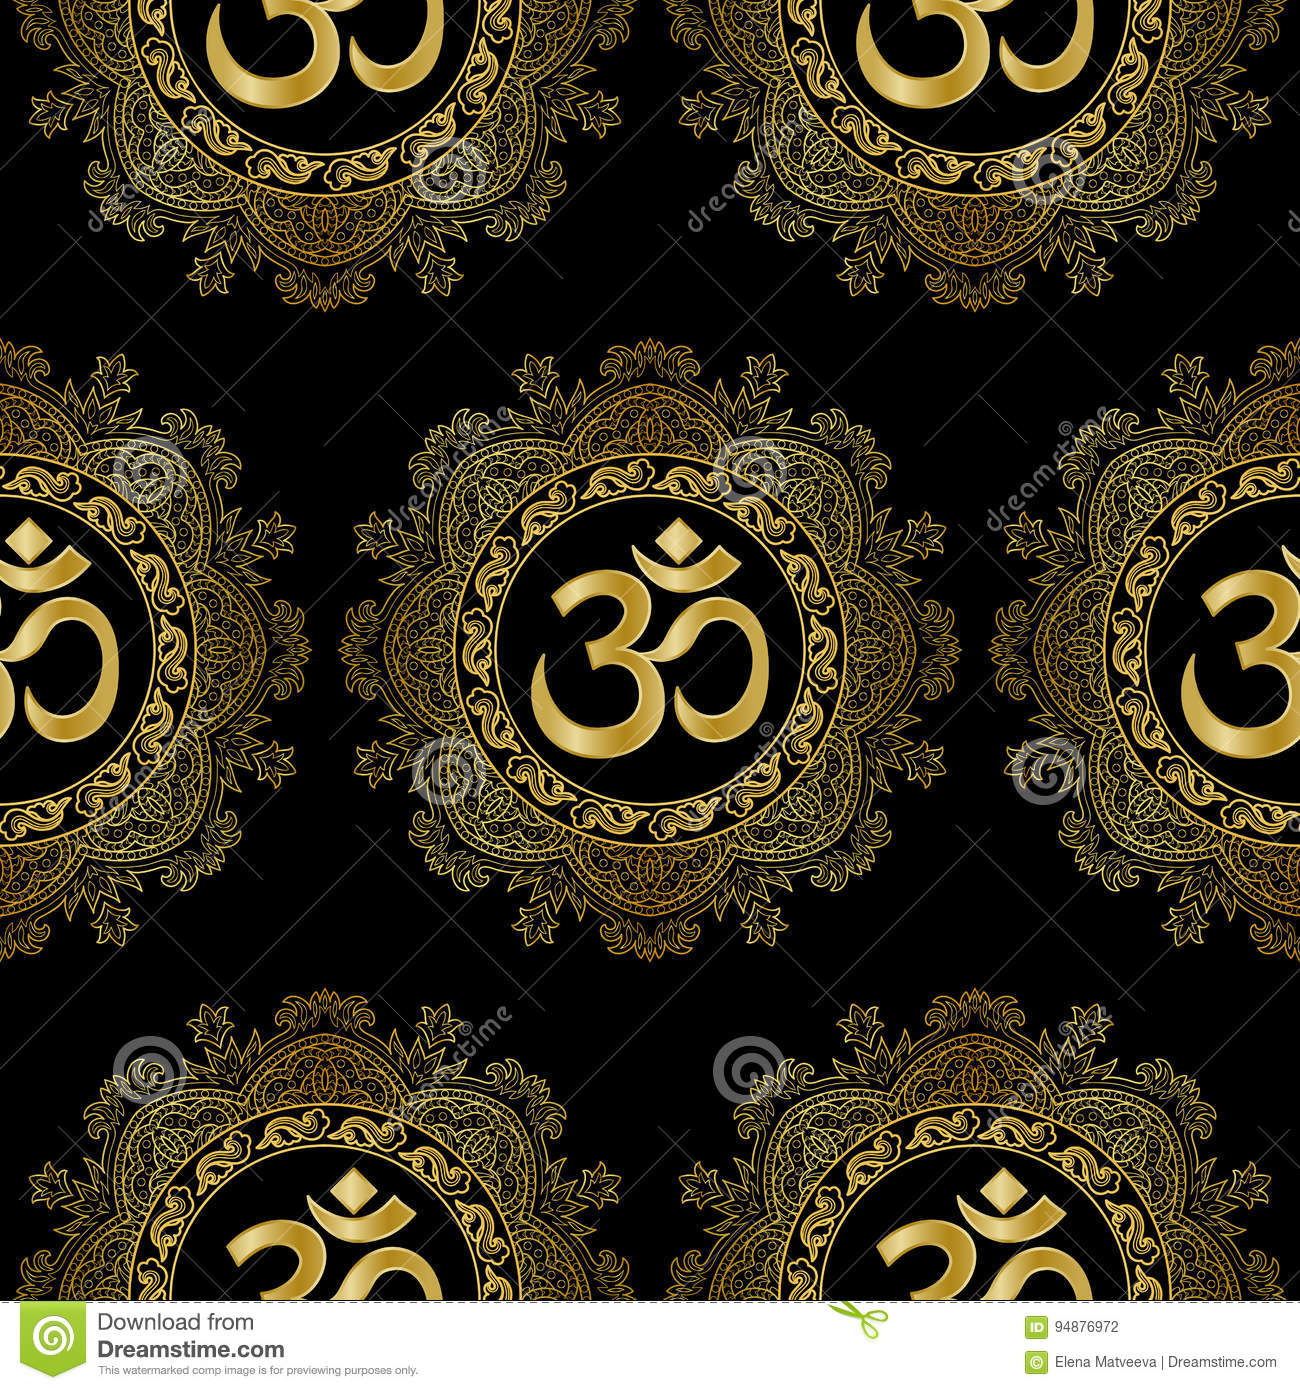 Cool Wallpaper Marble Mandala - om-mandala-seamless-pattern-gold-mantra-black-background-modern-wallpaper-textile-print-94876972  Snapshot_616896.jpg